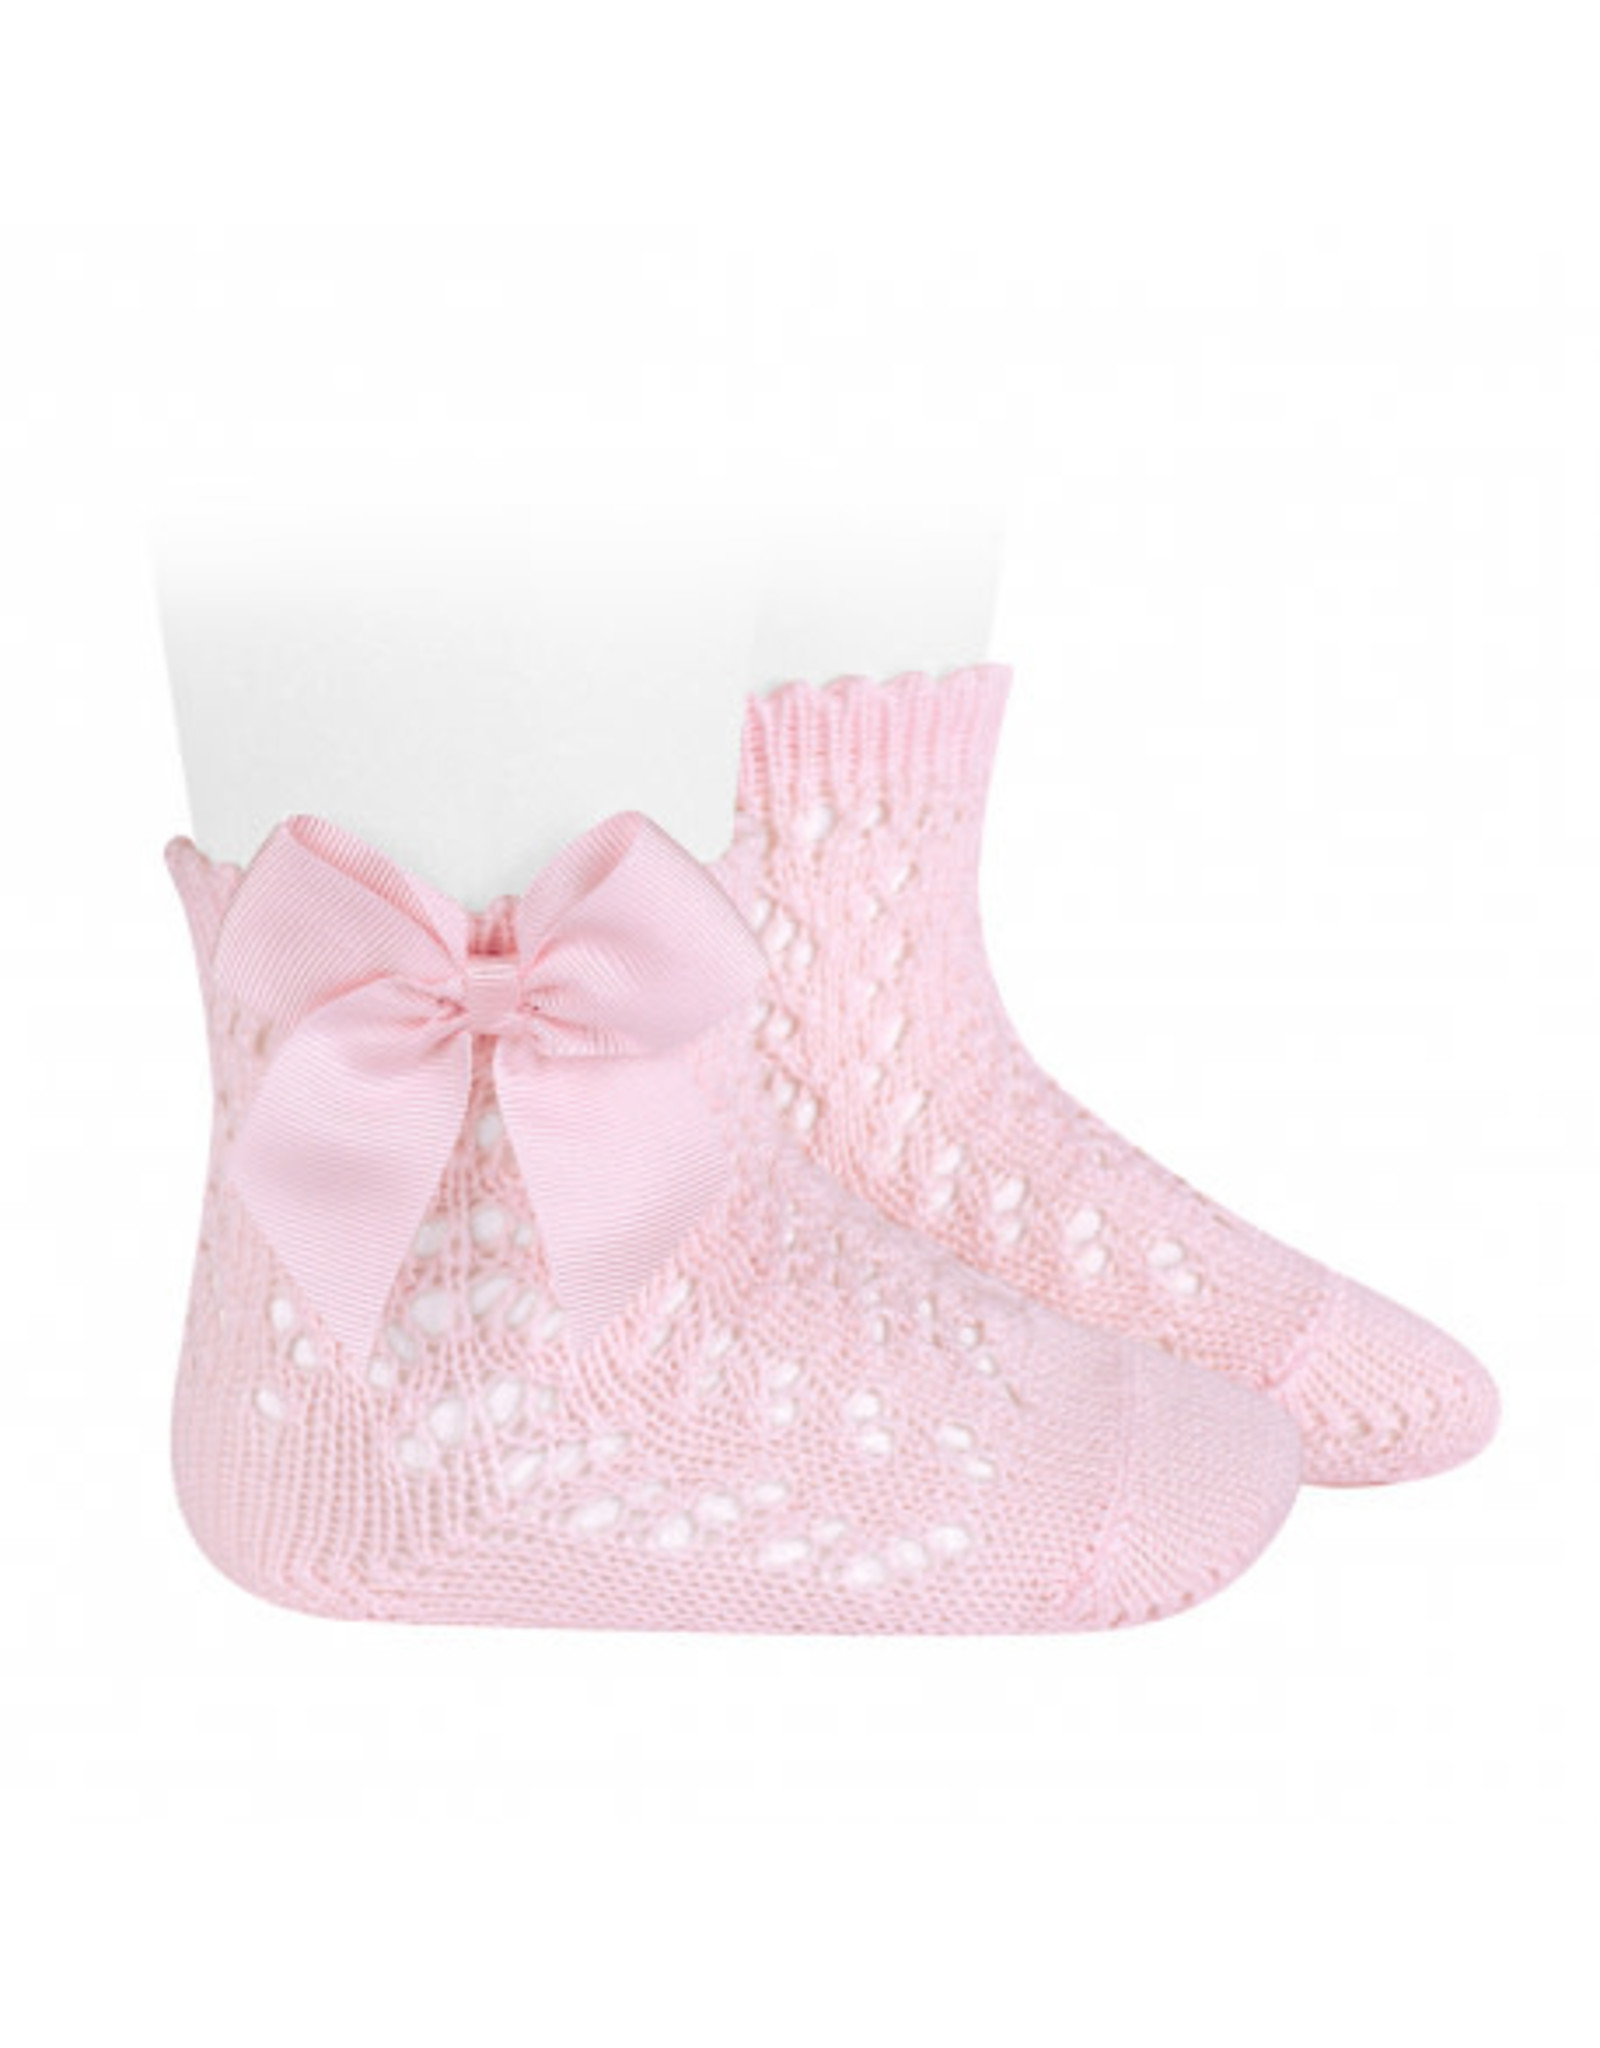 CONDOR Pink Openwork Short Socks with Bow